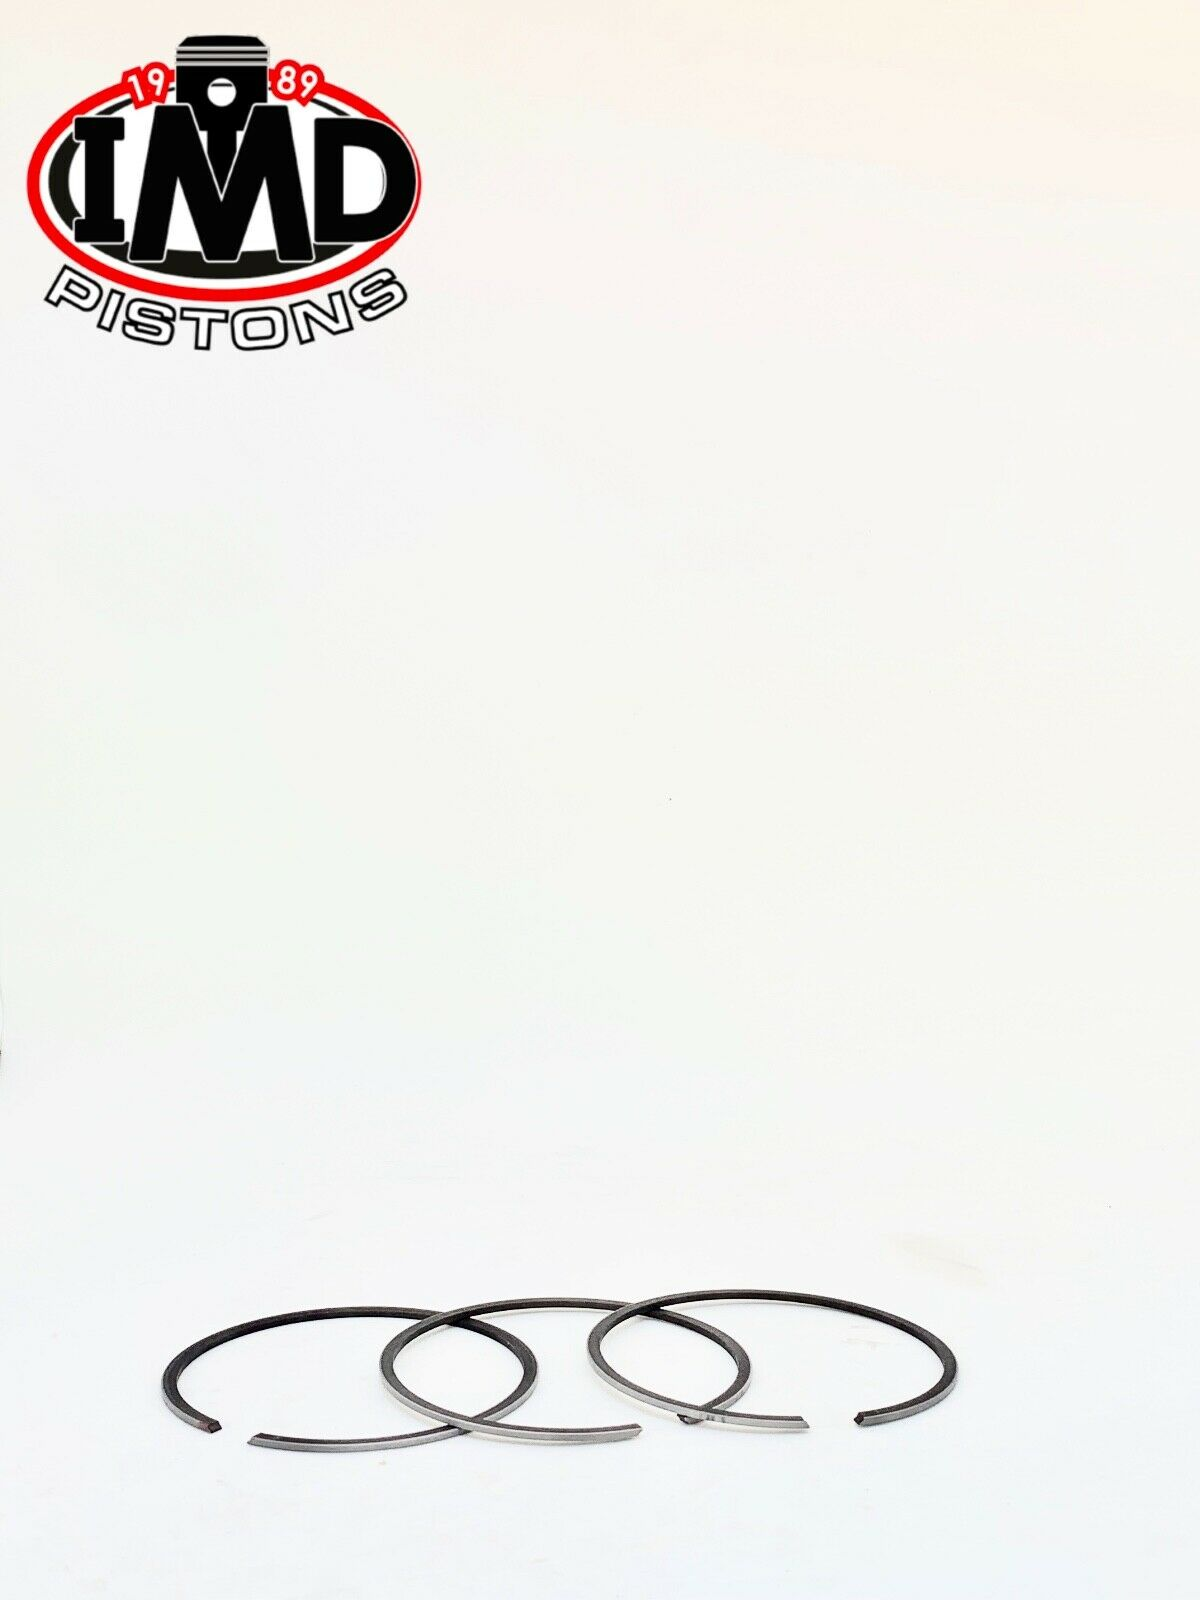 Honda C70 St70 Cf70 Std Piston Ring Set 47mm New Parts 087 Rik 1 Of 1free Shipping